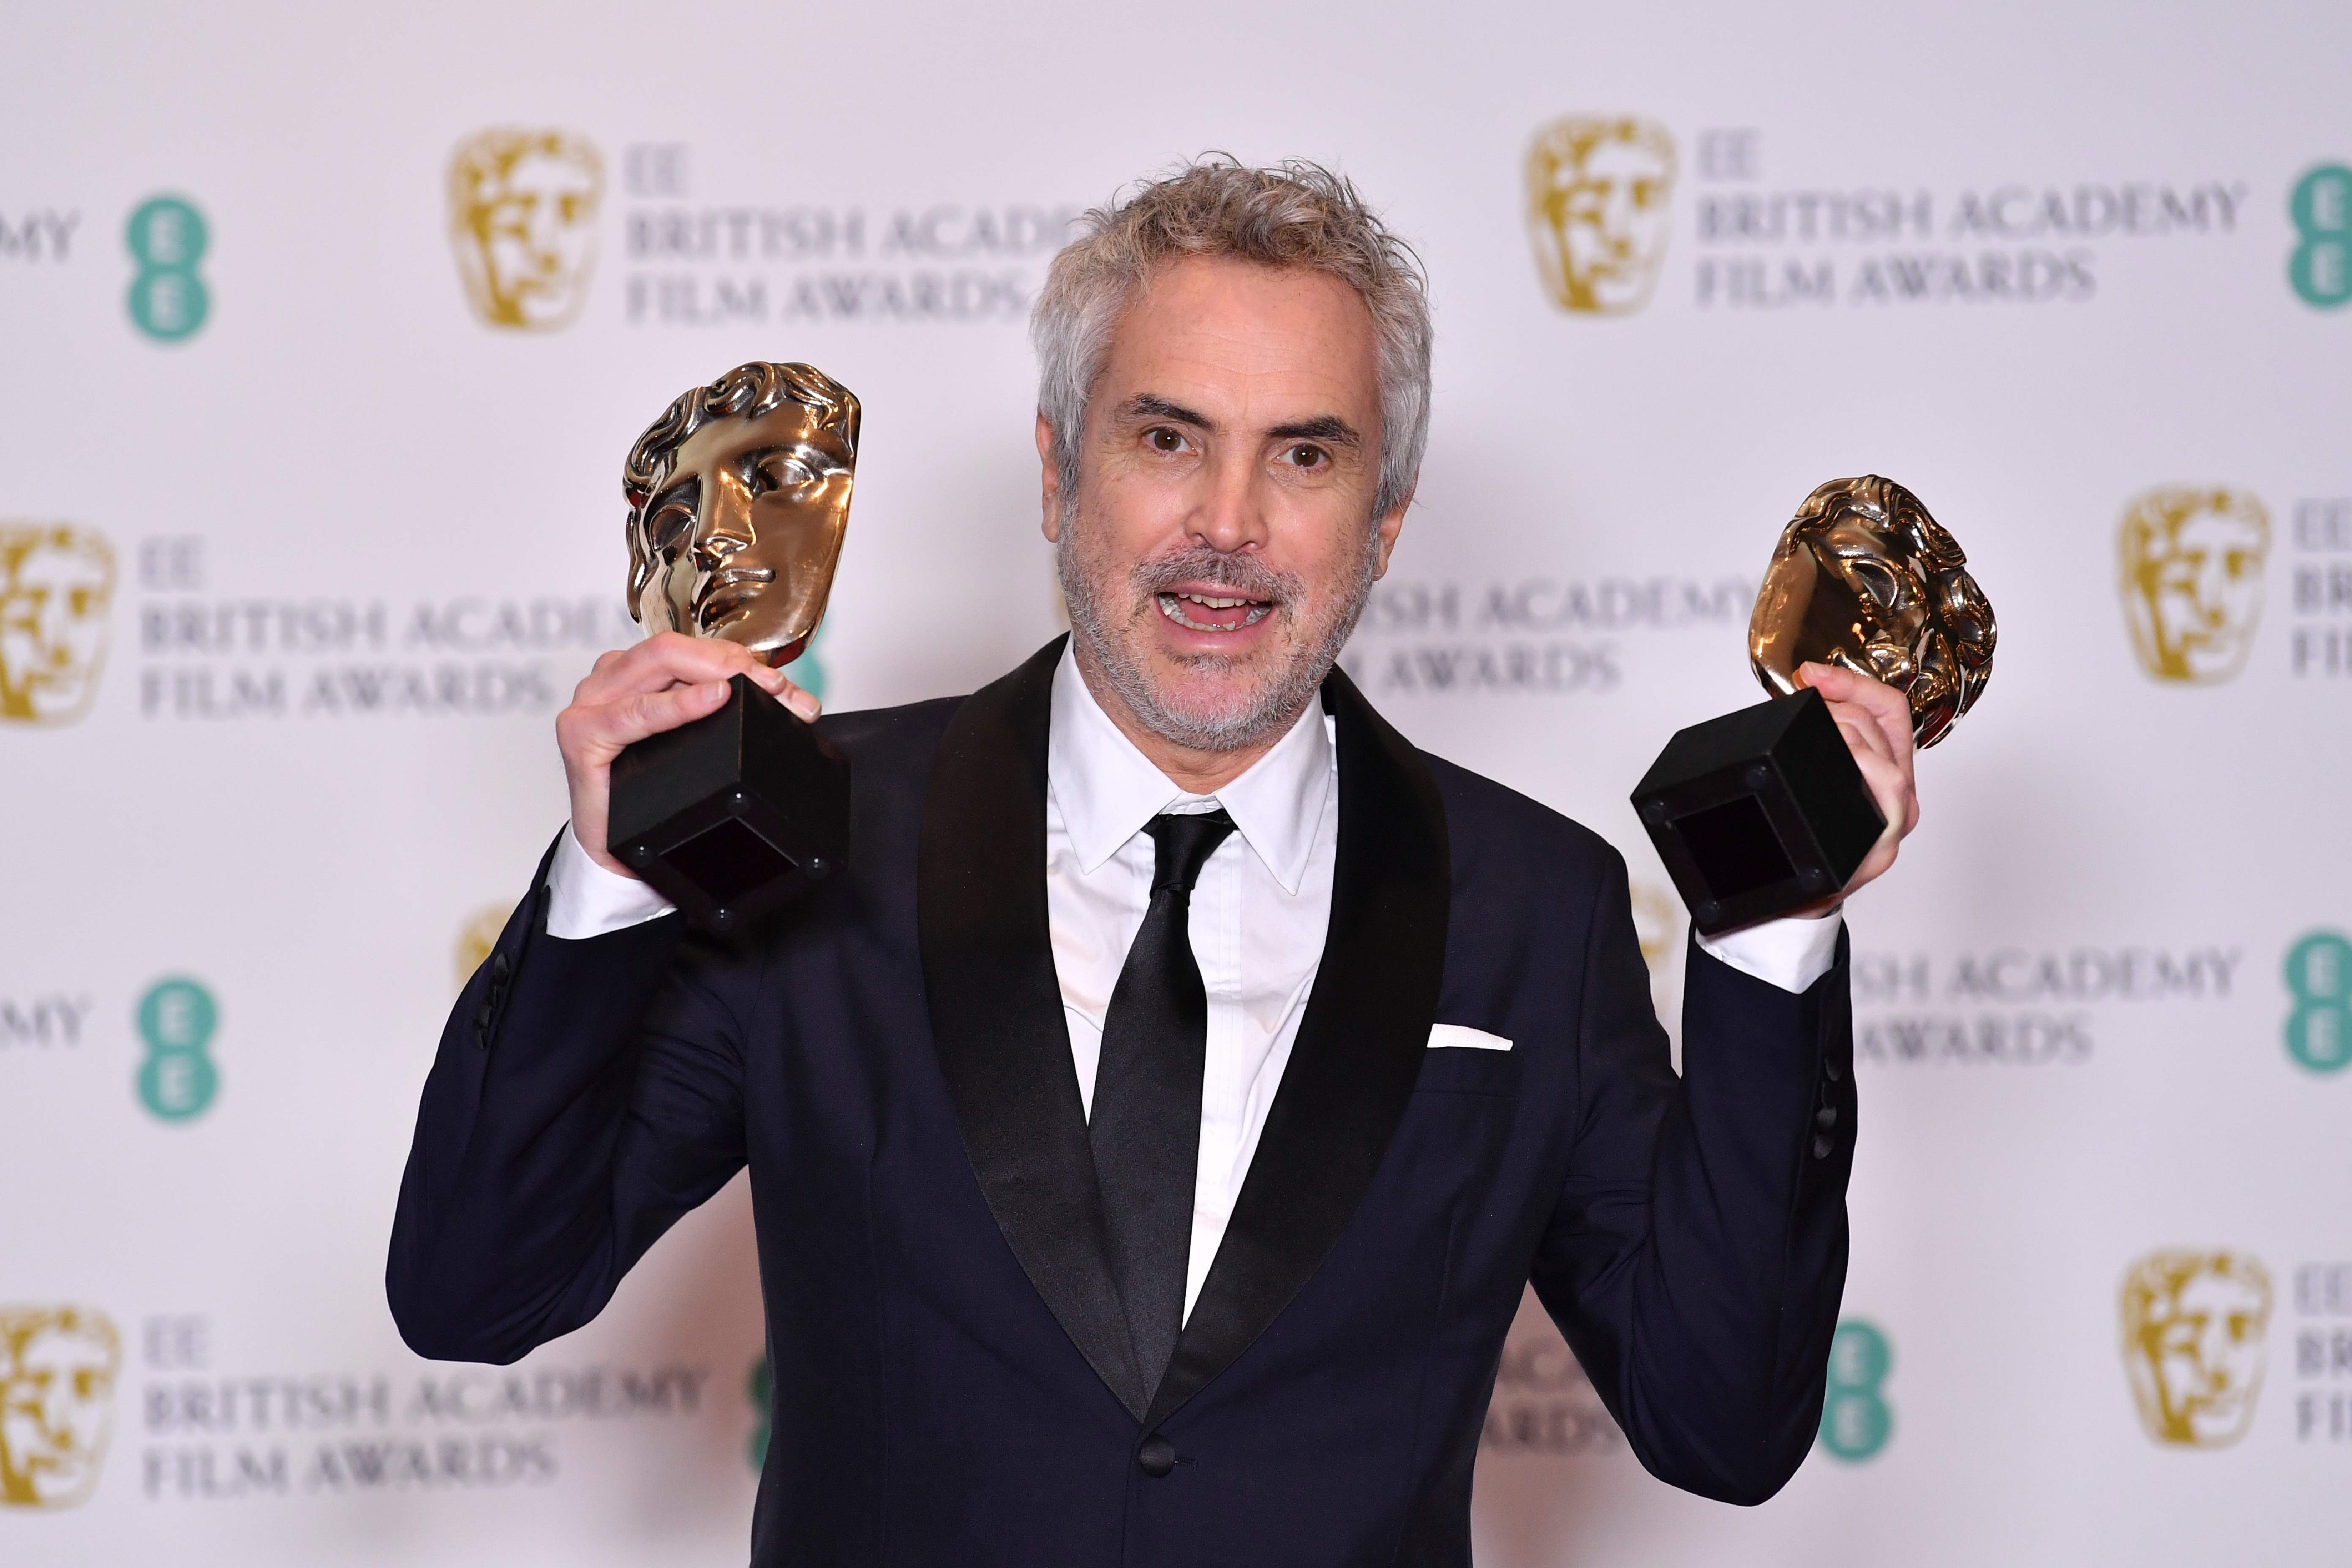 Mexican director Alfonso Cuaron poses with the awards for a Director and for Best Film for 'Roma' at the BAFTA British Academy Film Awards at the Royal Albert Hall in London on February 10, 2019 (Photo by Ben STANSALL / AFP)